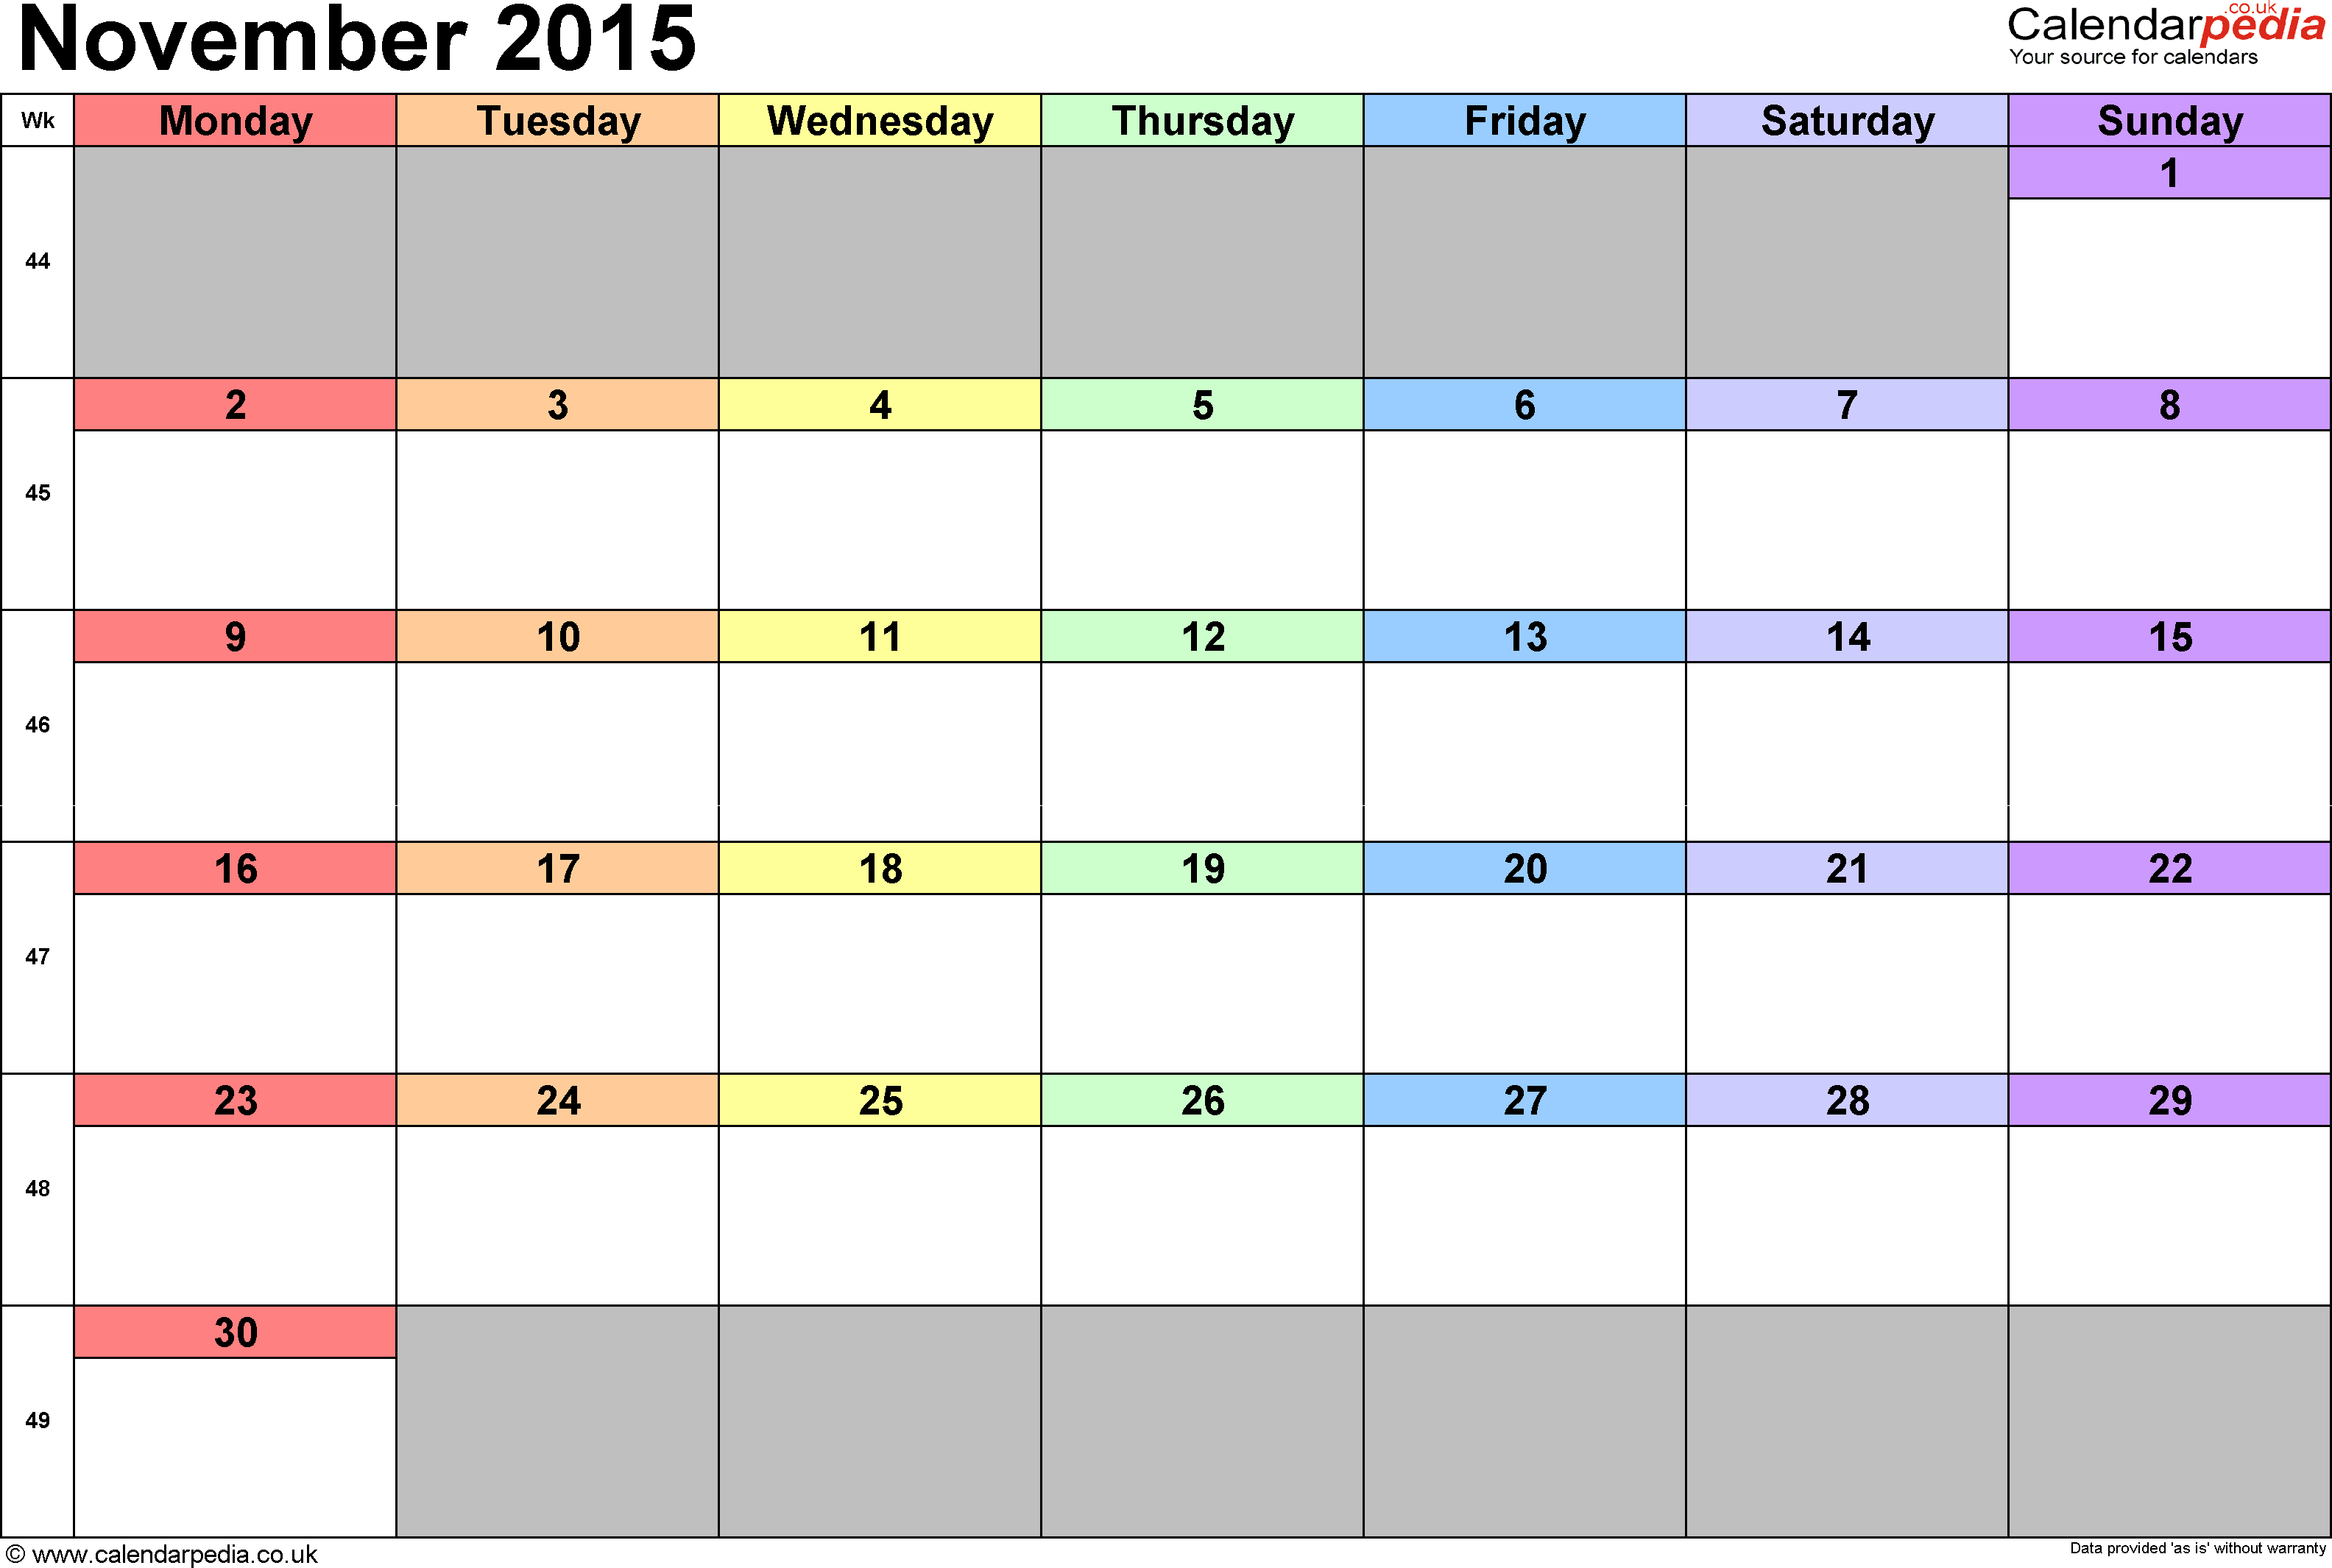 Calendar November 2015, landscape orientation, 1 page, with UK bank holidays and week numbers